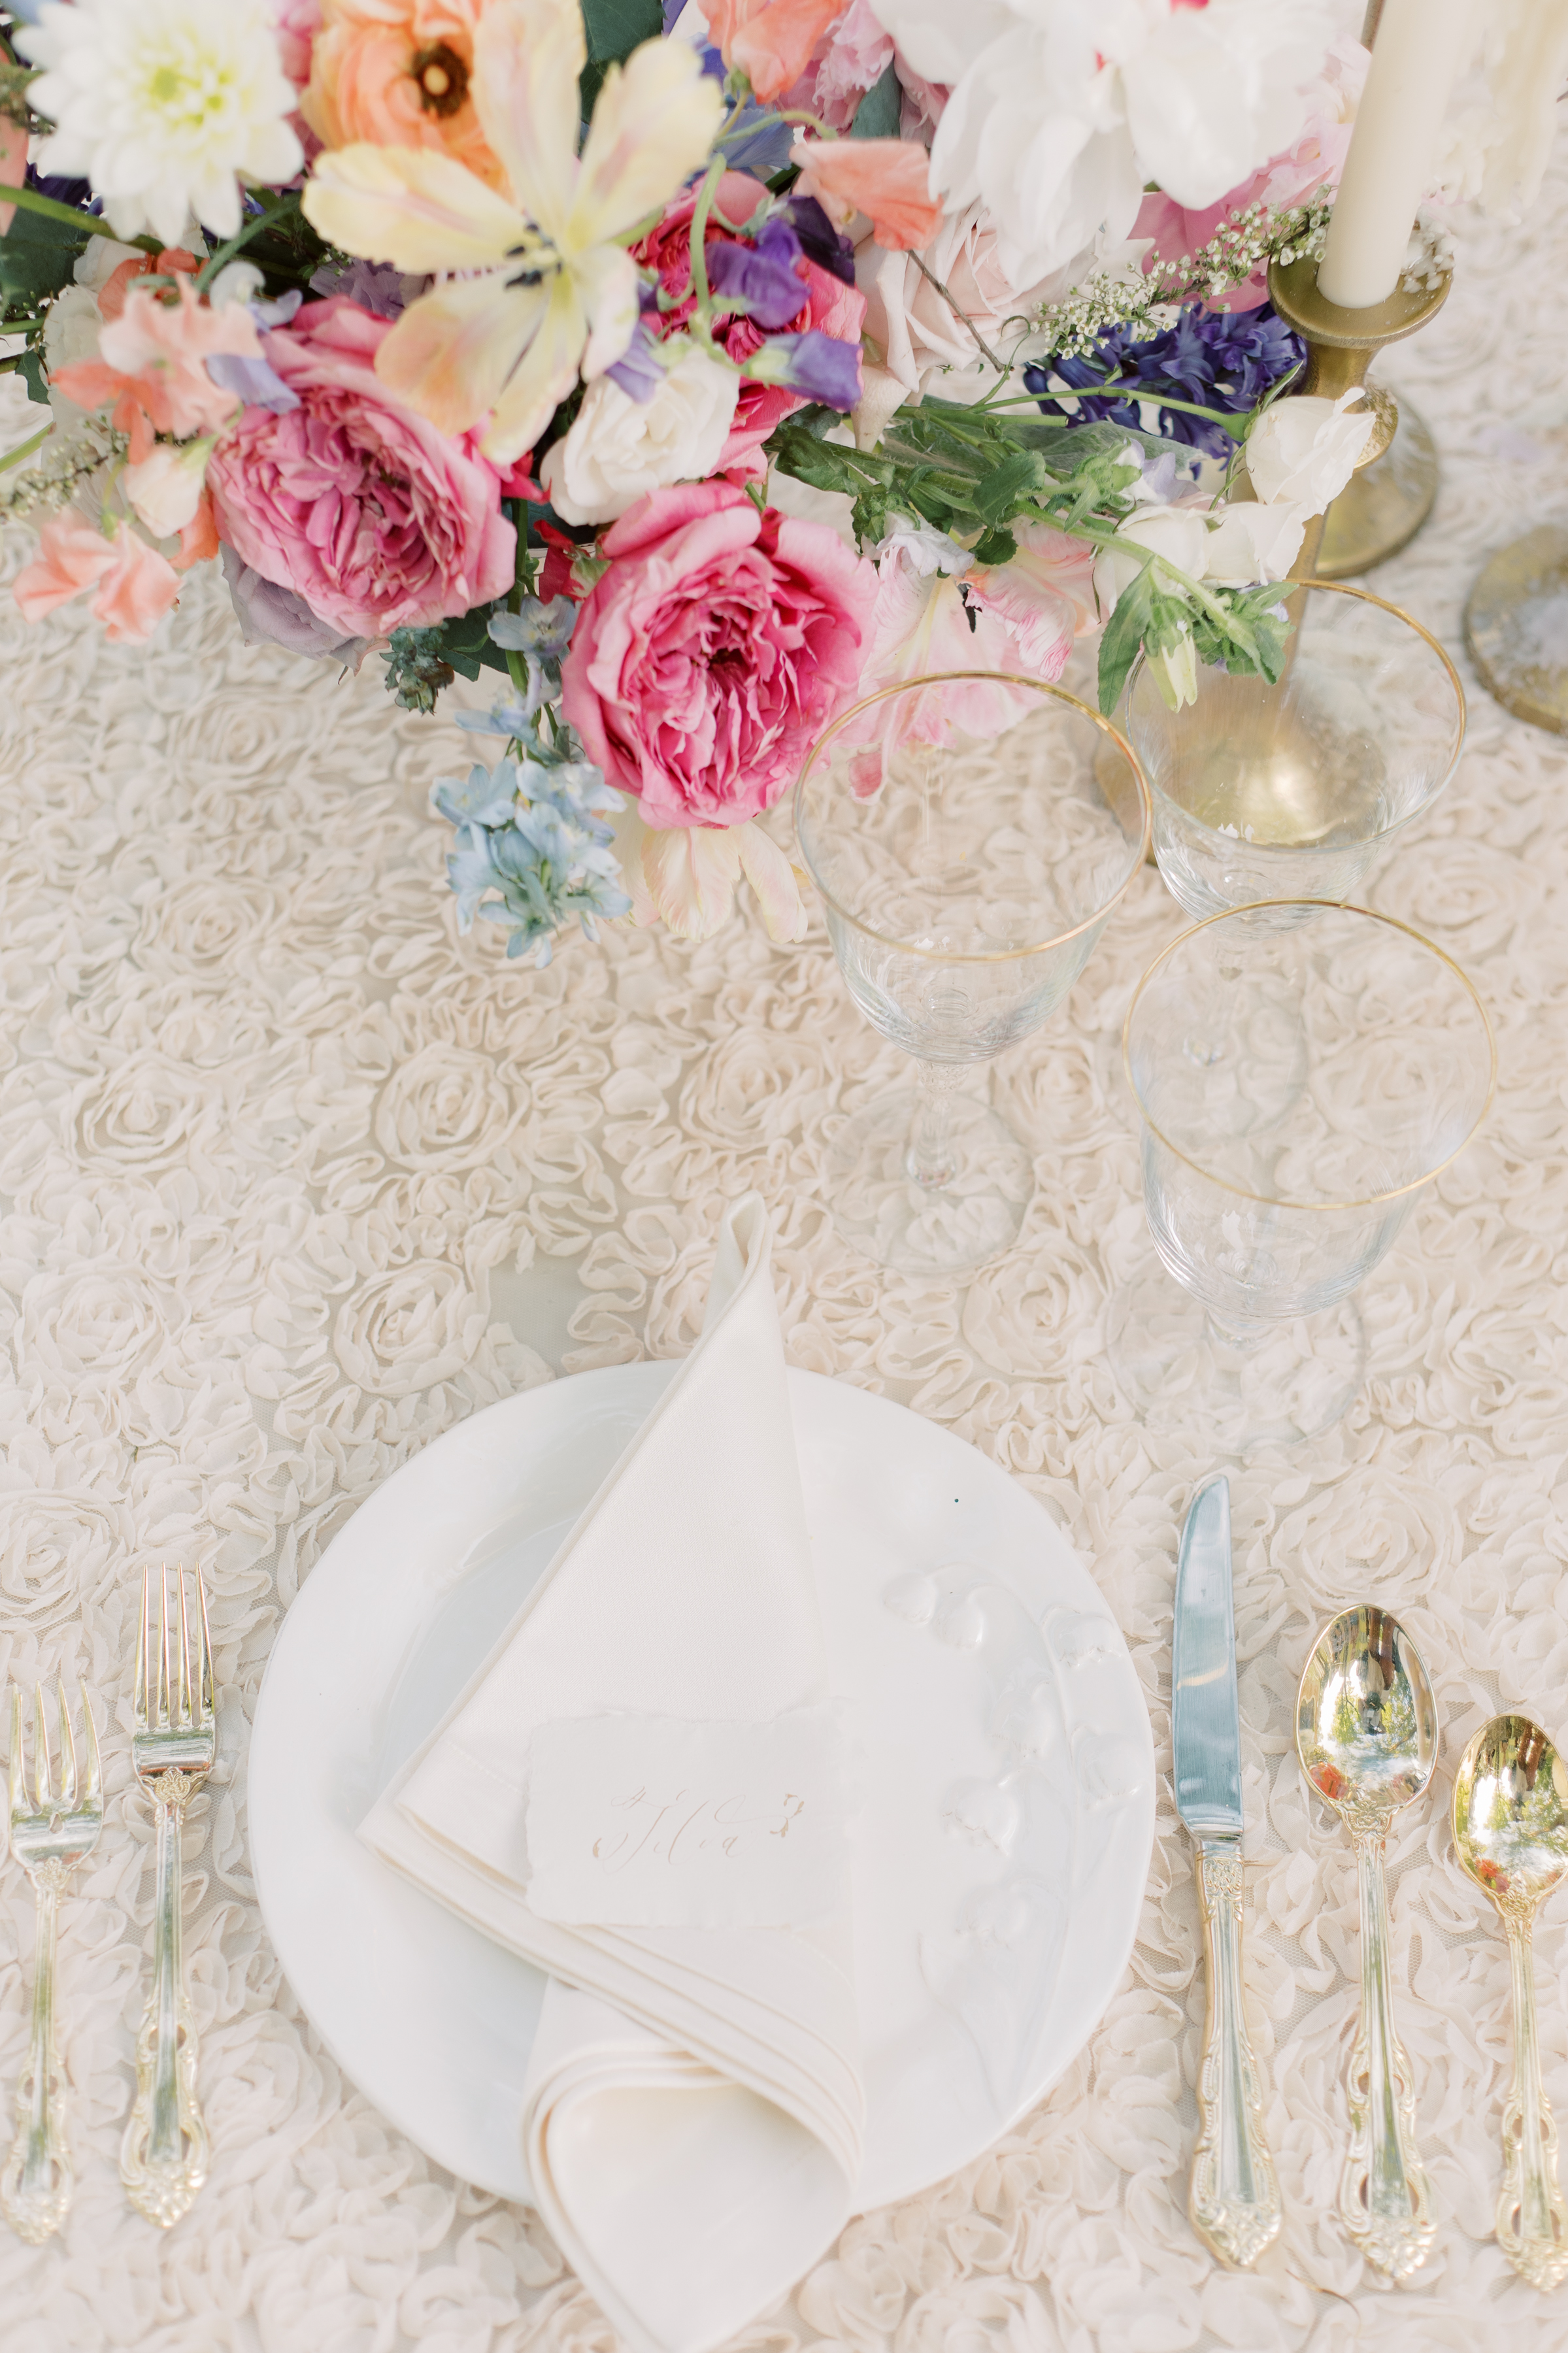 Faith Roper Photography and East Made Co Nashville wedding planner at the Estate at Cherokee Dock wedding inspired by Monet Hybrid Co-88.jpg